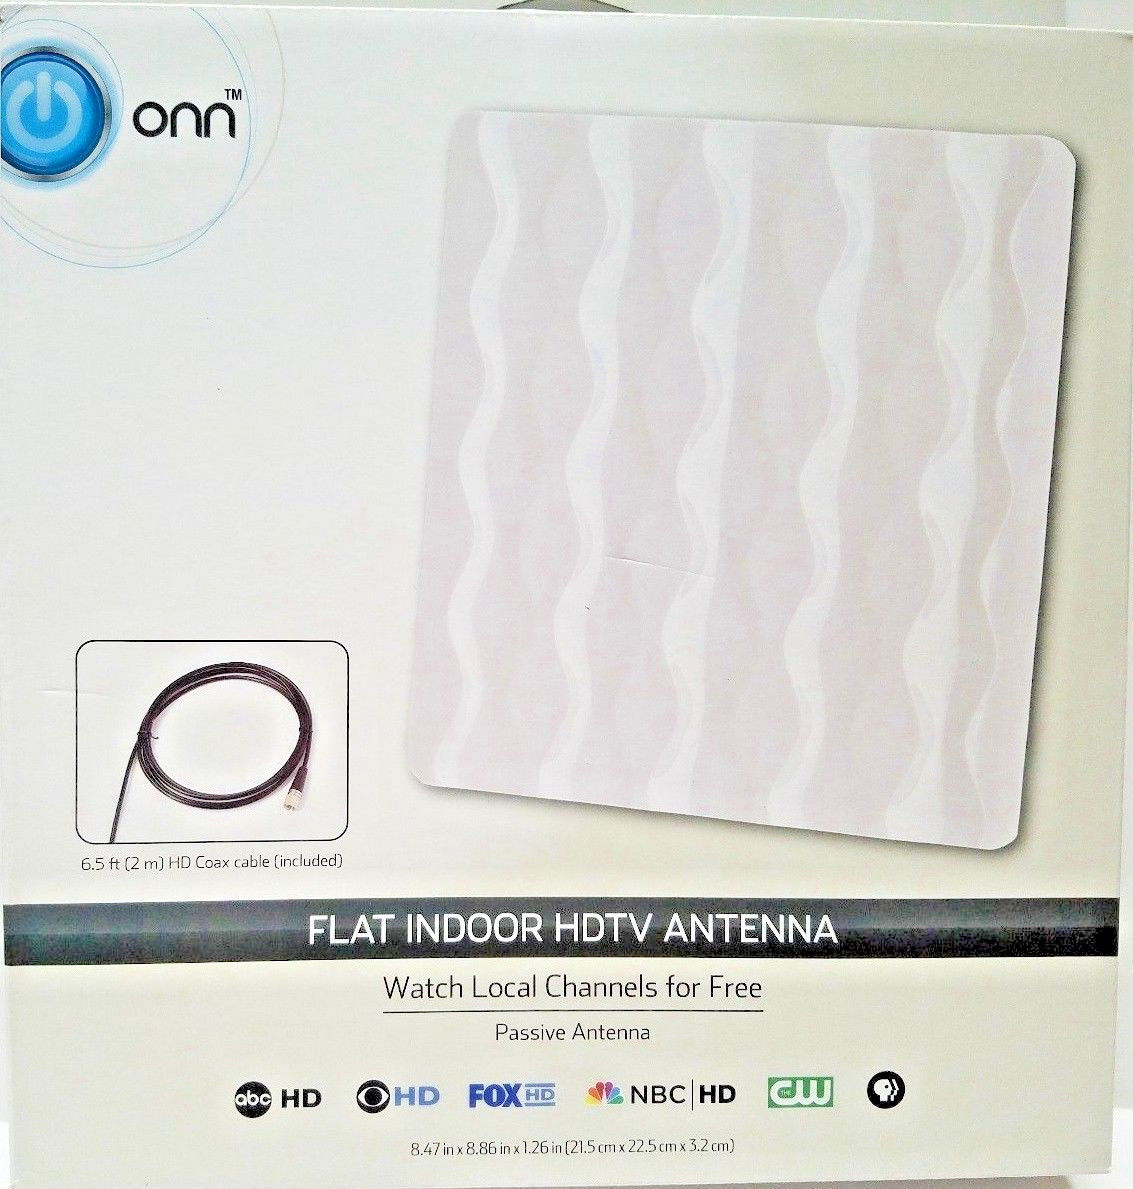 Primary image for Onn ONA17CH002 Flat Indoor HDTV Antenna Watch Local Channels for Free Ship - NEW